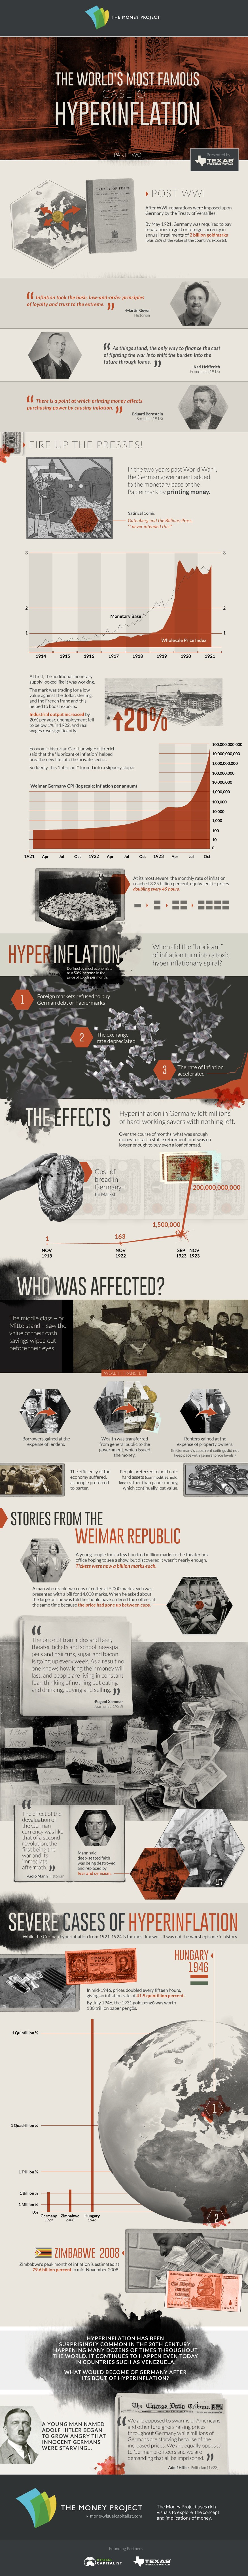 hyperinflation-infographic-part2